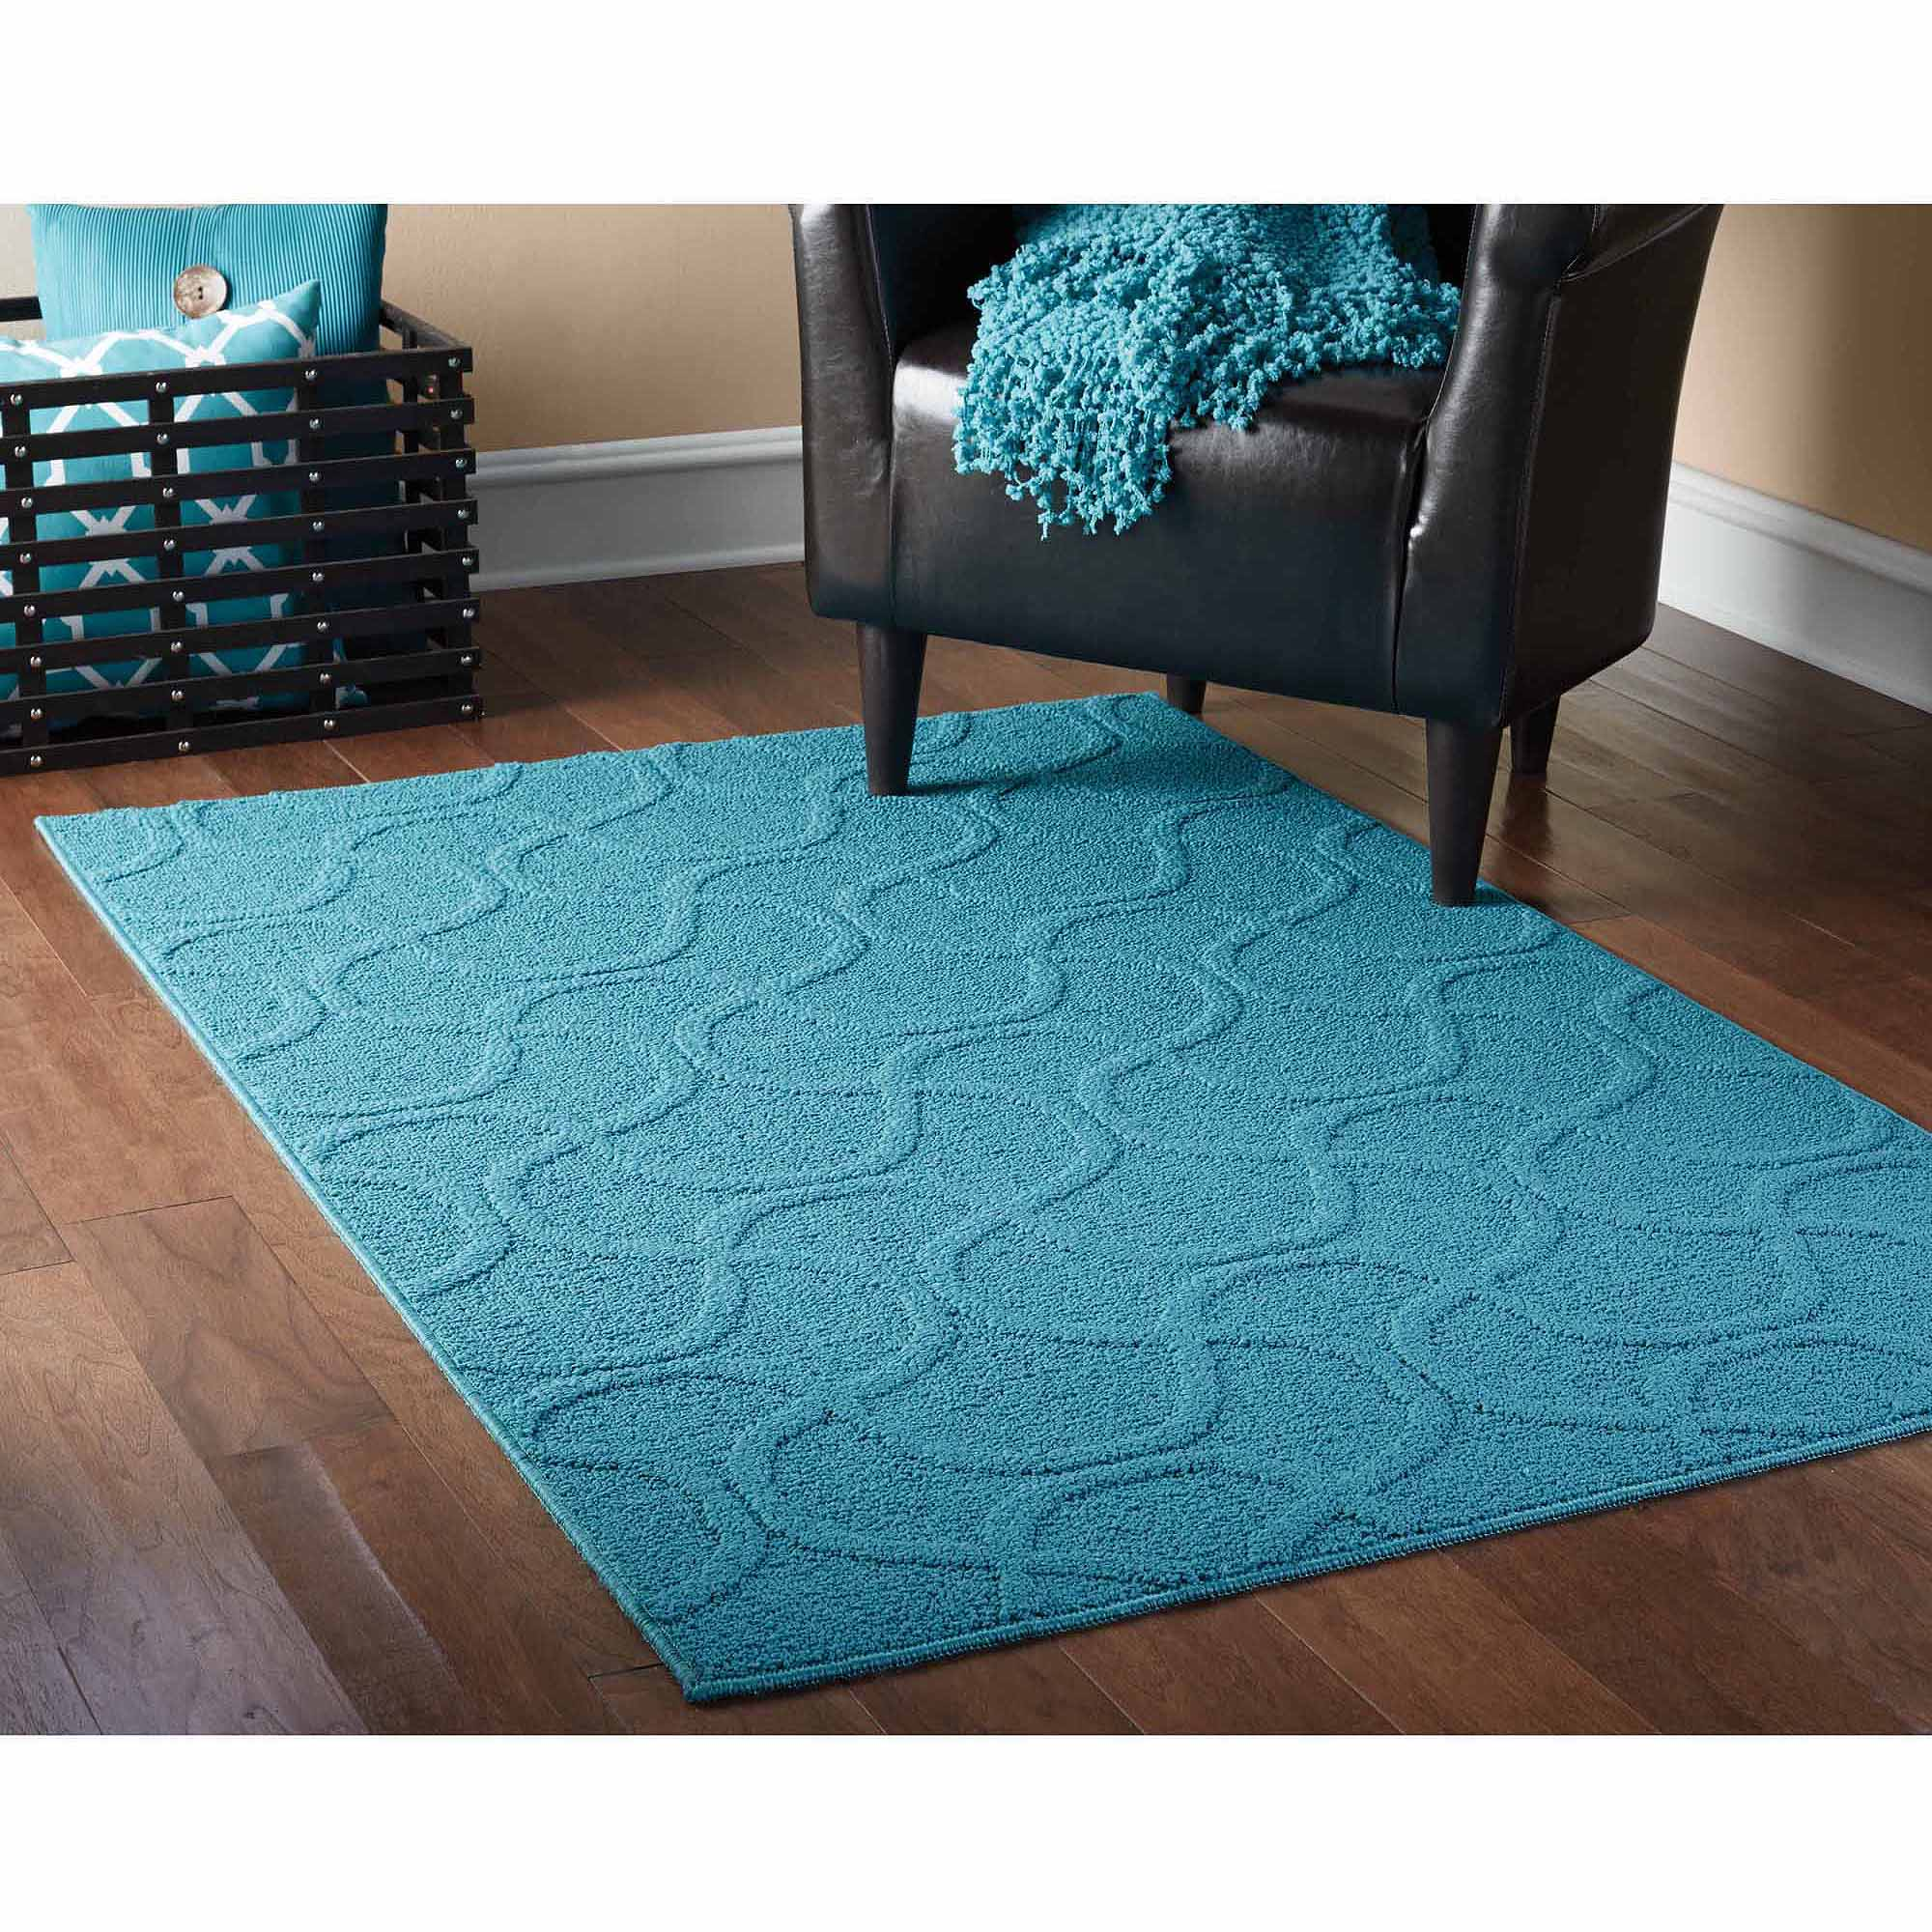 Mainstays Drizzle Area Rug, Teal